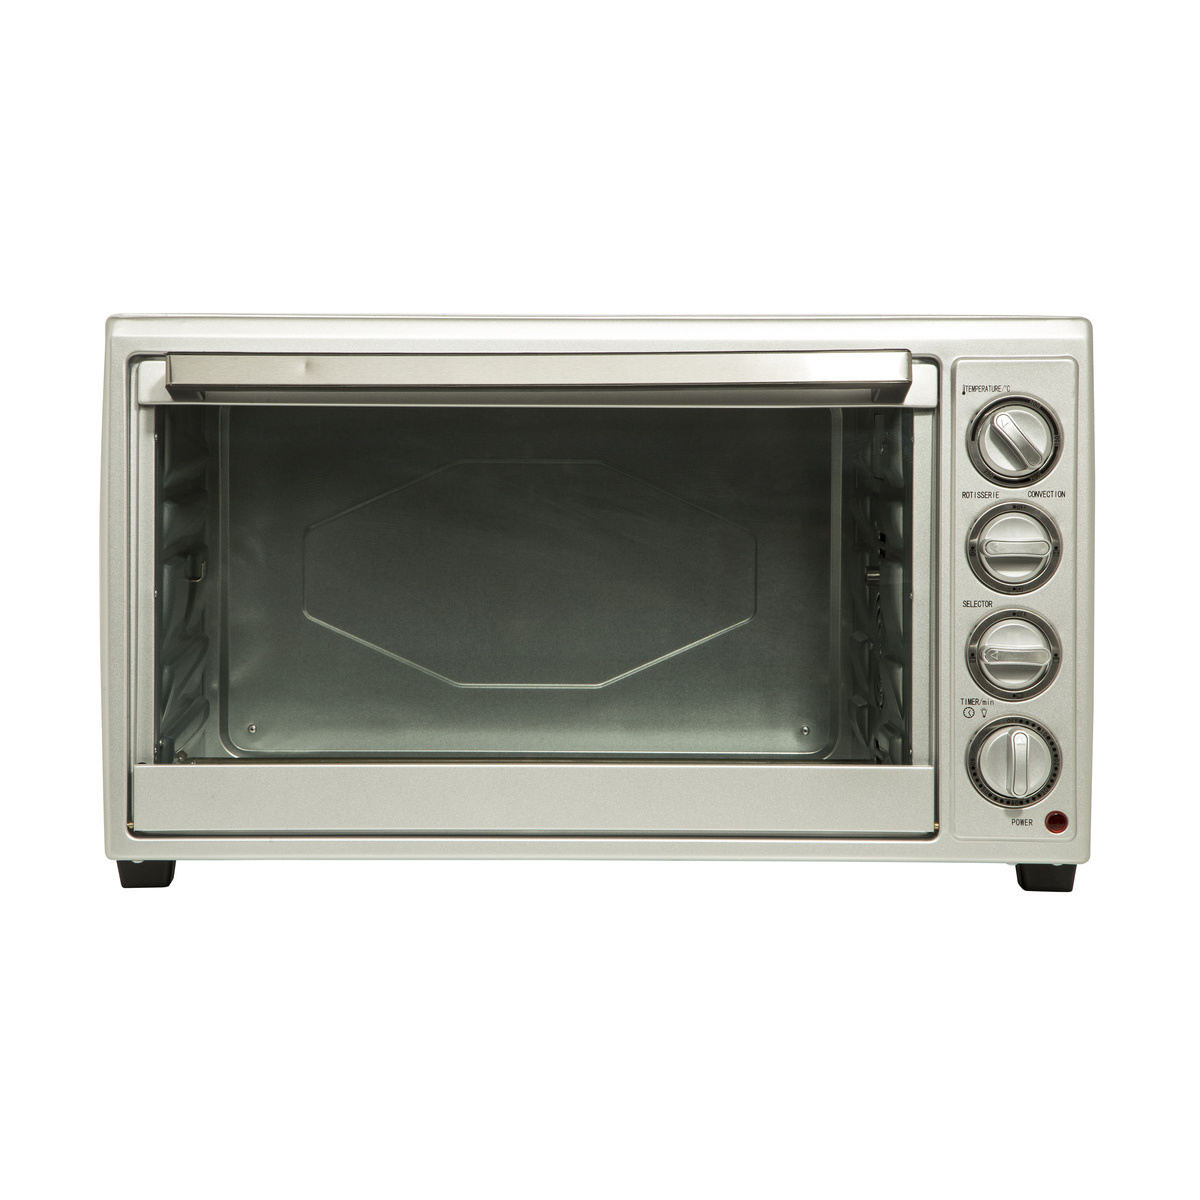 Best Countertop Ovens For Baking Convection Oven For Baking Cakes